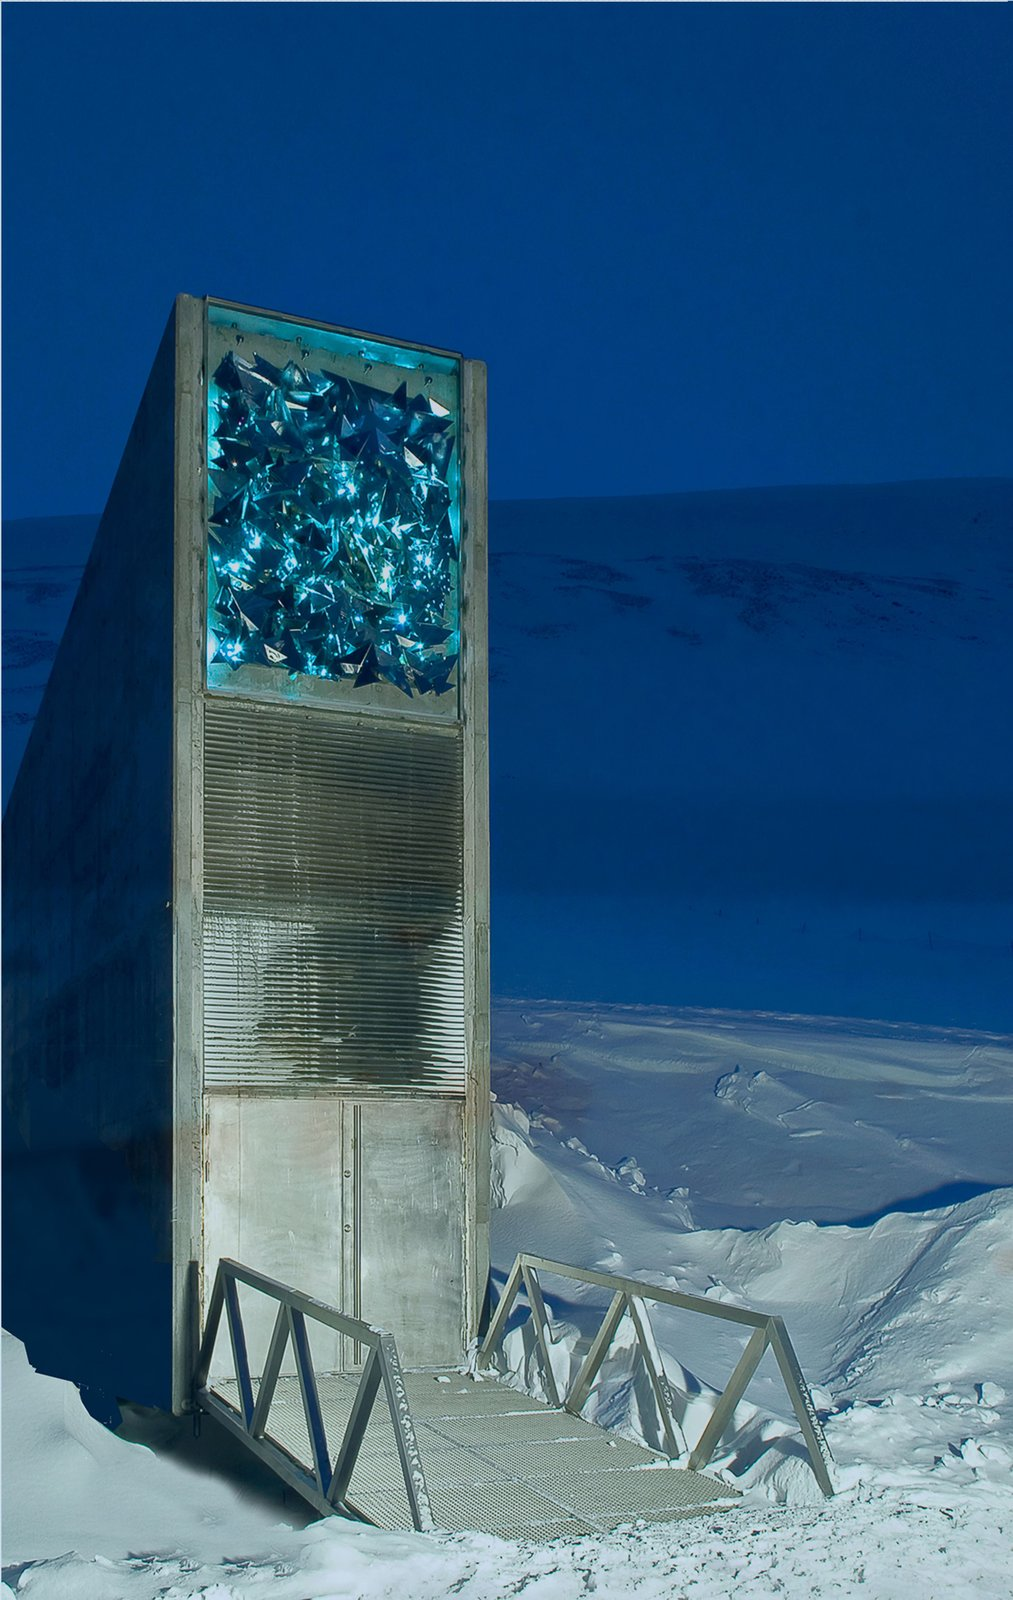 Svalbard Global Seed Vault, Svalbard, Norway, 2007. Designed by BC Arkitektur Barlindhaug Consult A.S. of Norway and Project Architect Peter Wilhelm Söderman of Finland. Photo by Jaro Hollan.  Cabins & Hideouts by Stephen Blake from Snøhetta Curates Nordic Design